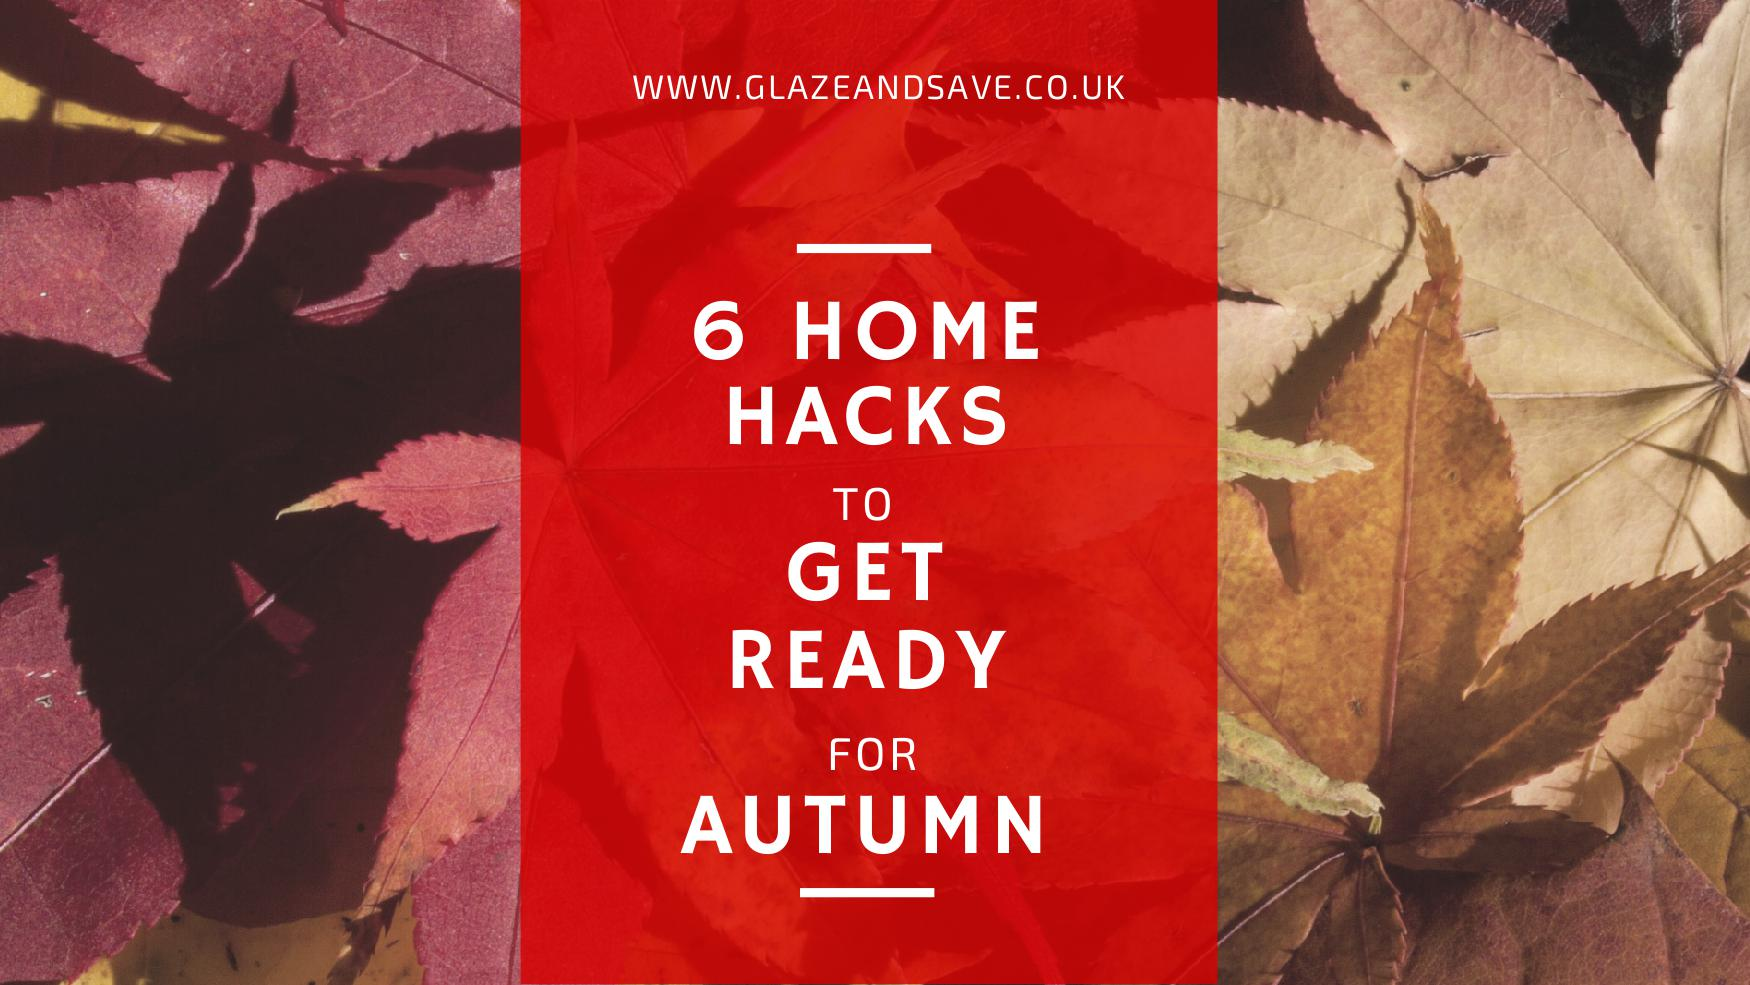 6 home hacks to get ready for autumn by Glaze & Save bespoke magnetic secondary glazing and draught proofing specialists based in Perth, Scotland.